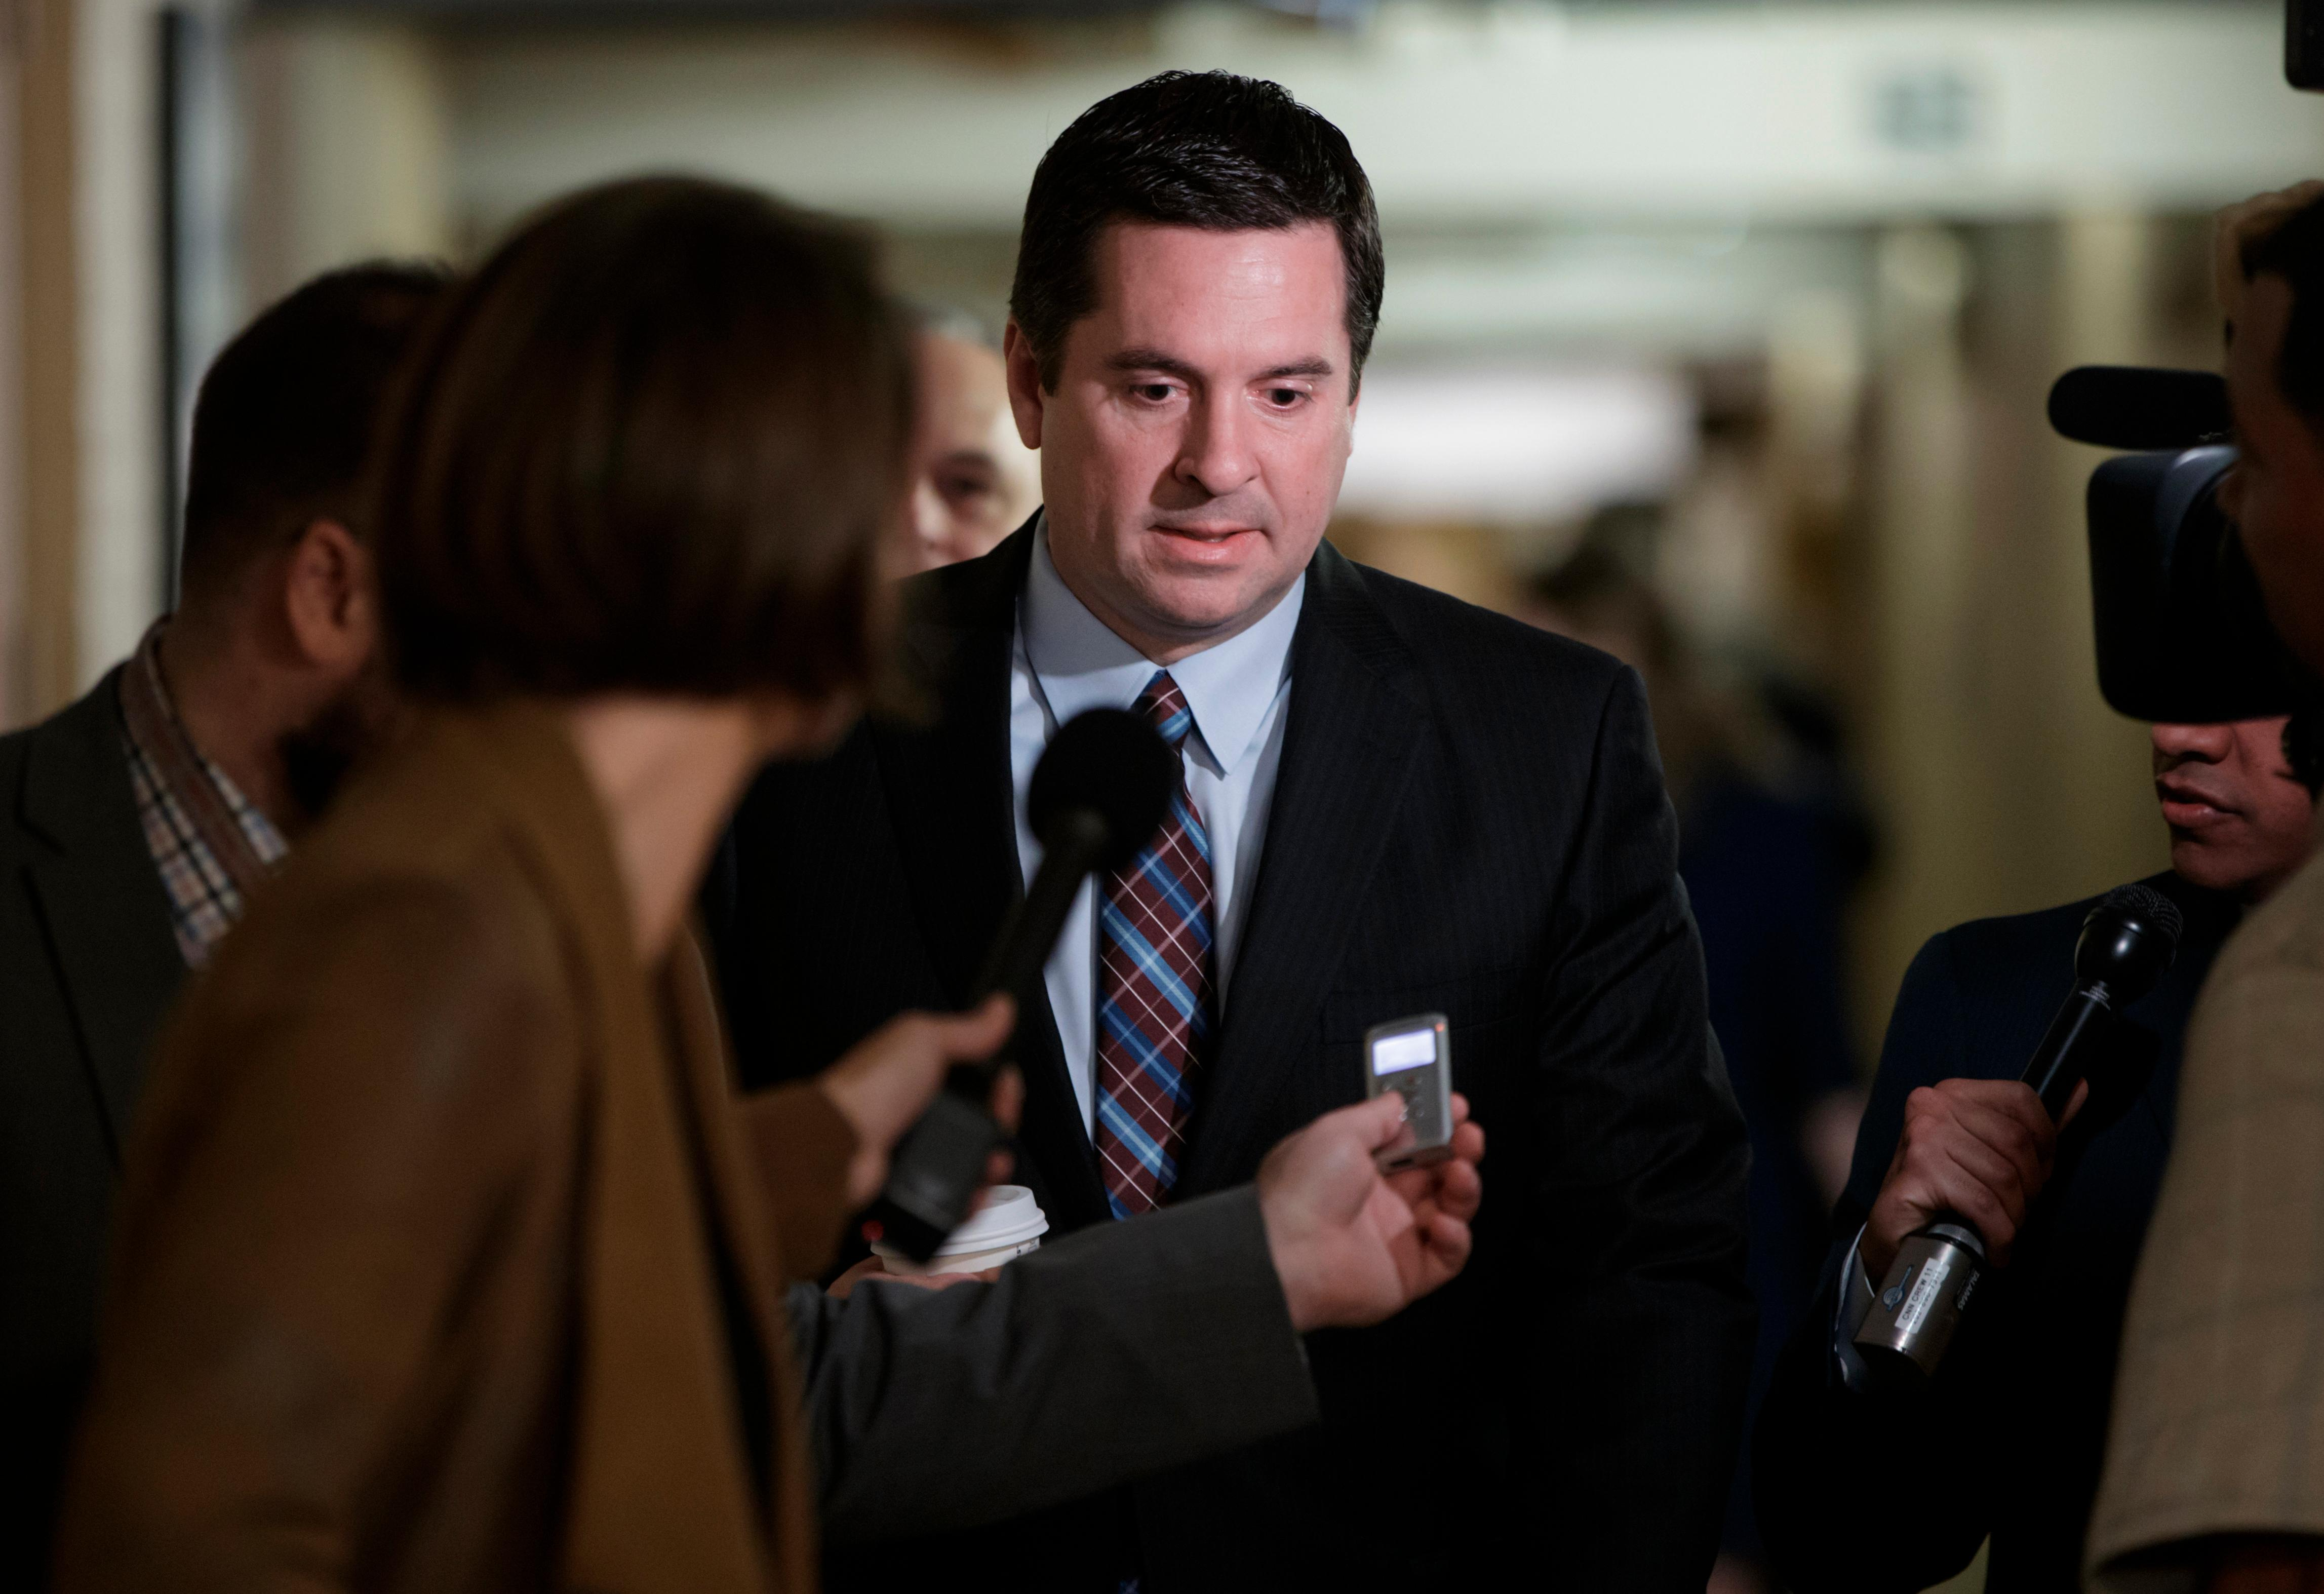 FILE - In this March 28, 2017 file photo, House Intelligence Committee Chairman Rep. Devin Nunes, R-Calif. is pursued by reporters on Capitol Hill in Washington. Nunes says he's temporarily stepping aside from Russia probe amid ethics accusations.  (AP Photo/J. Scott Applewhite, File)